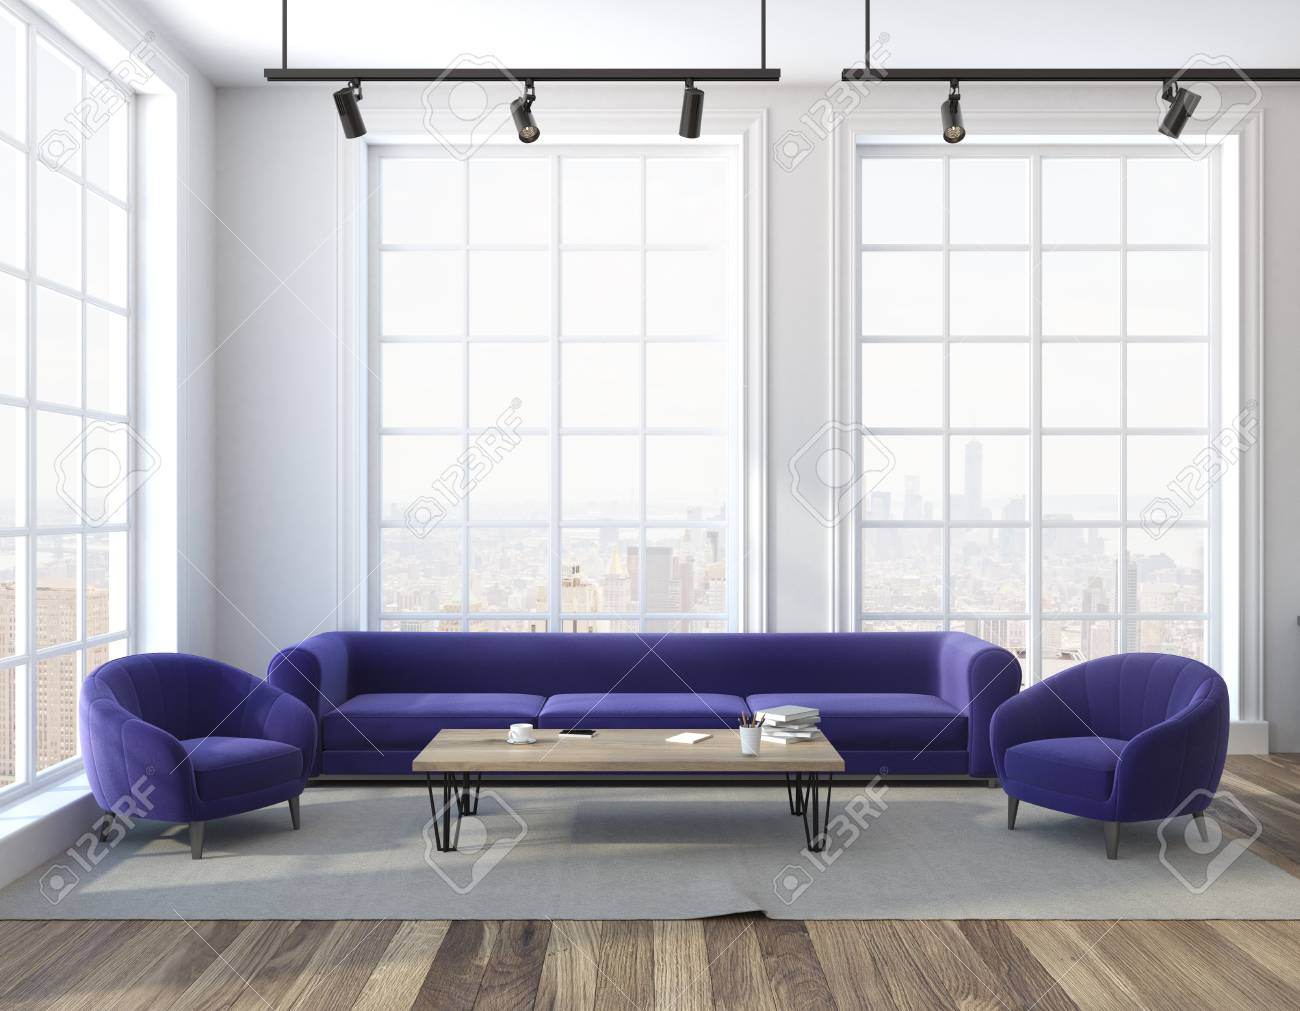 Loft Living Room Interior With White Walls A Wooden Floor A